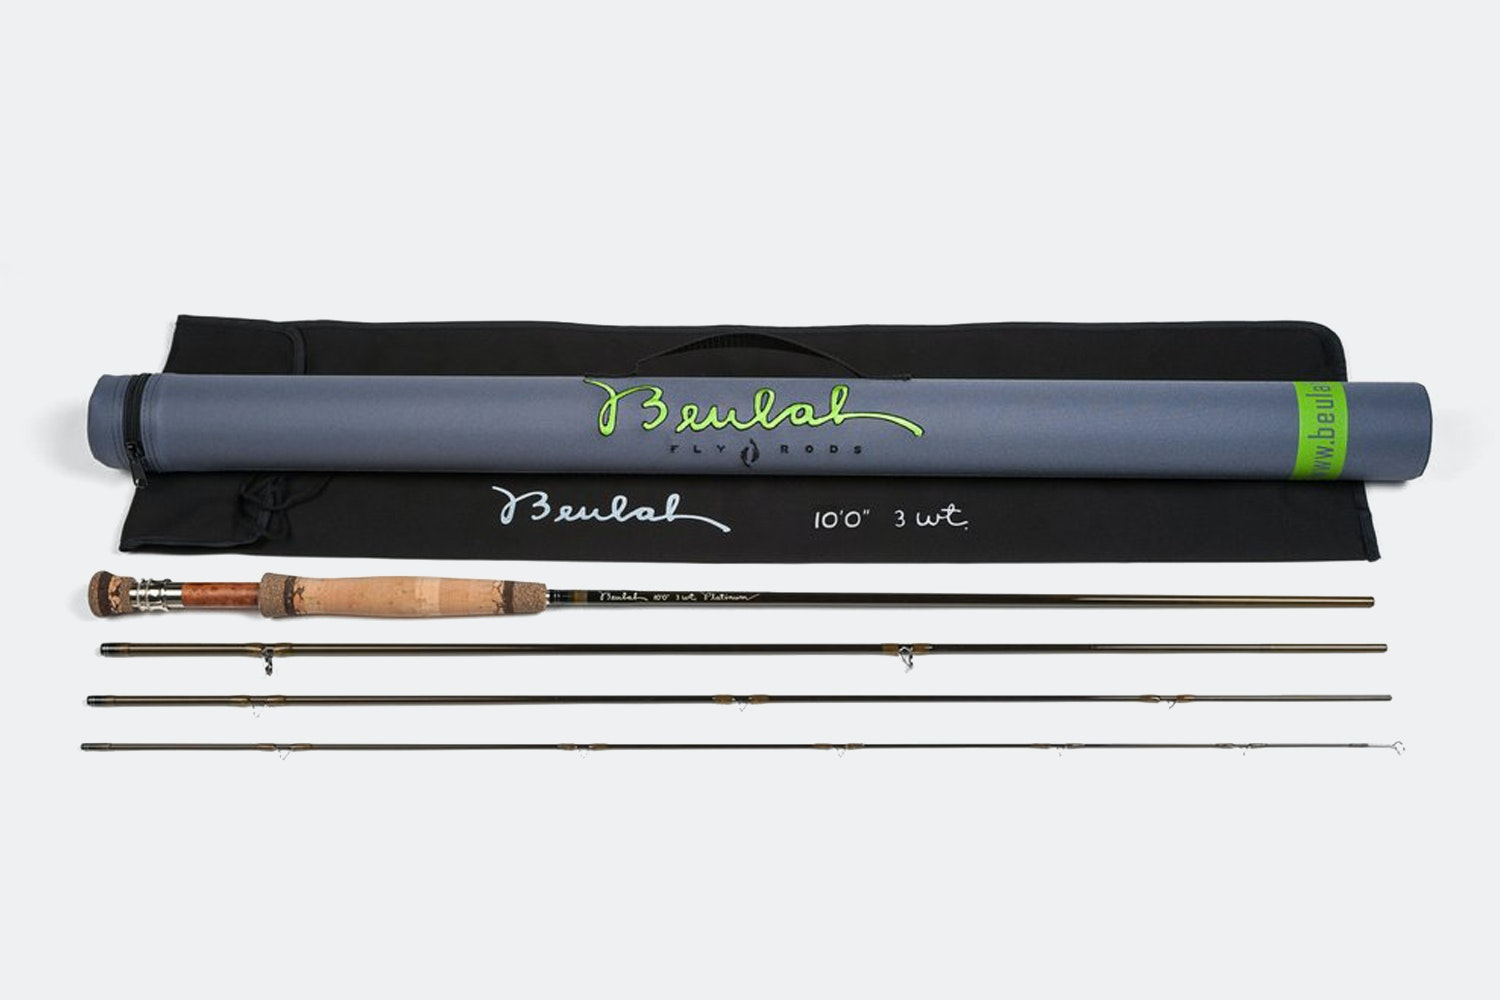 "Platinum Single Hand Rod 3wt 10'0"" (+ $100)"